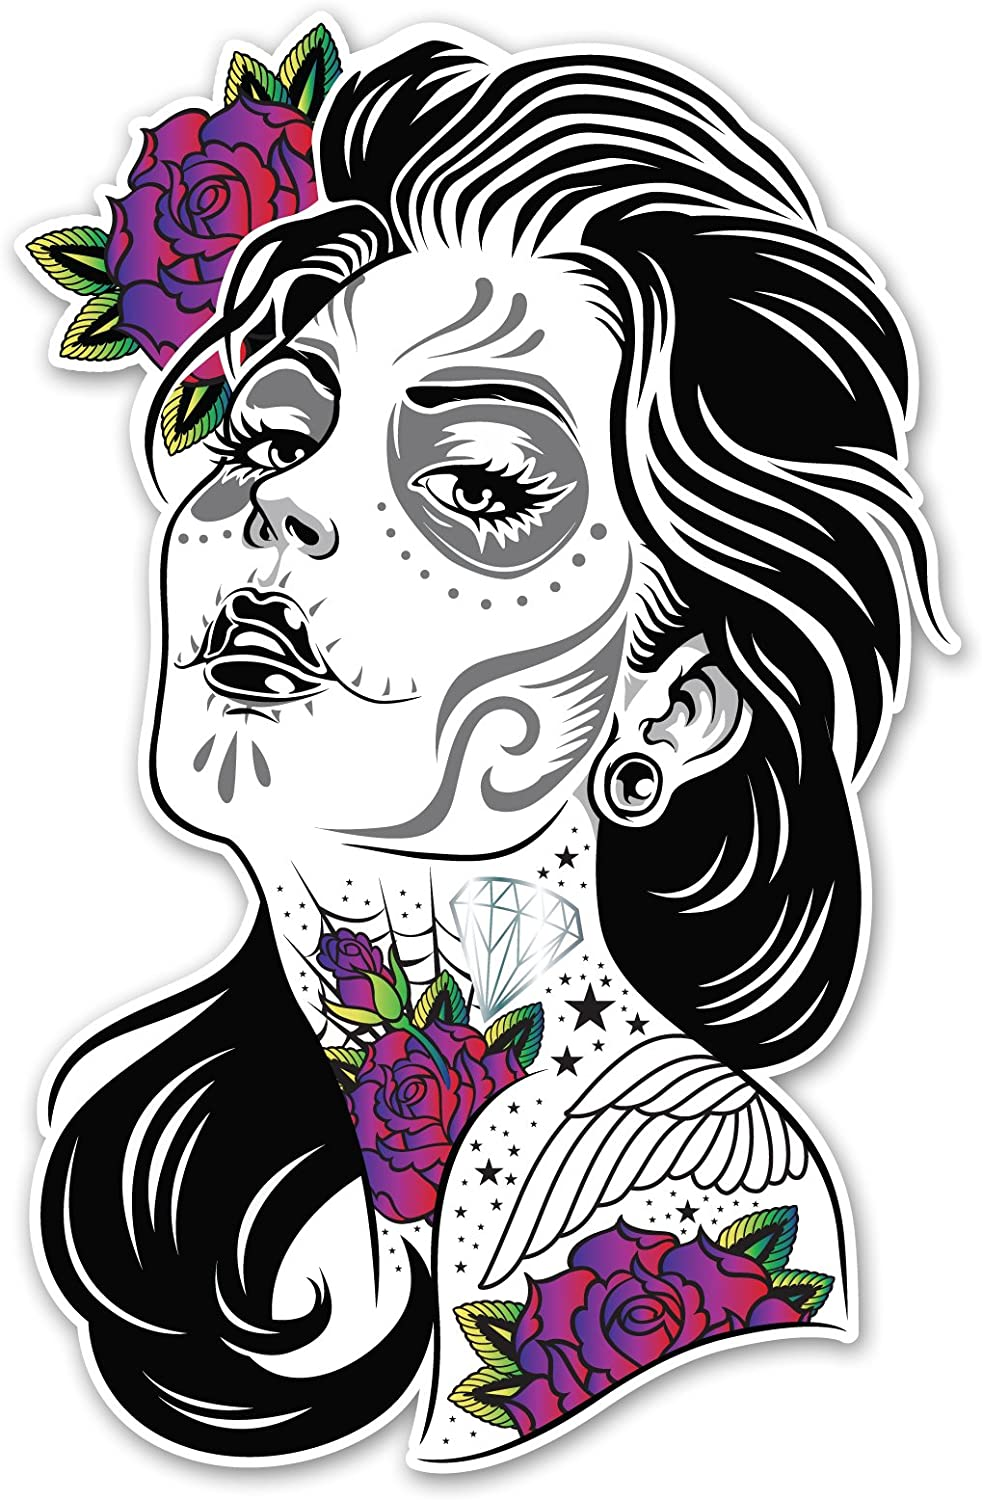 - Amazon.com: Ninja Pickle Sugar Skull Girl With Colored Roses Decal